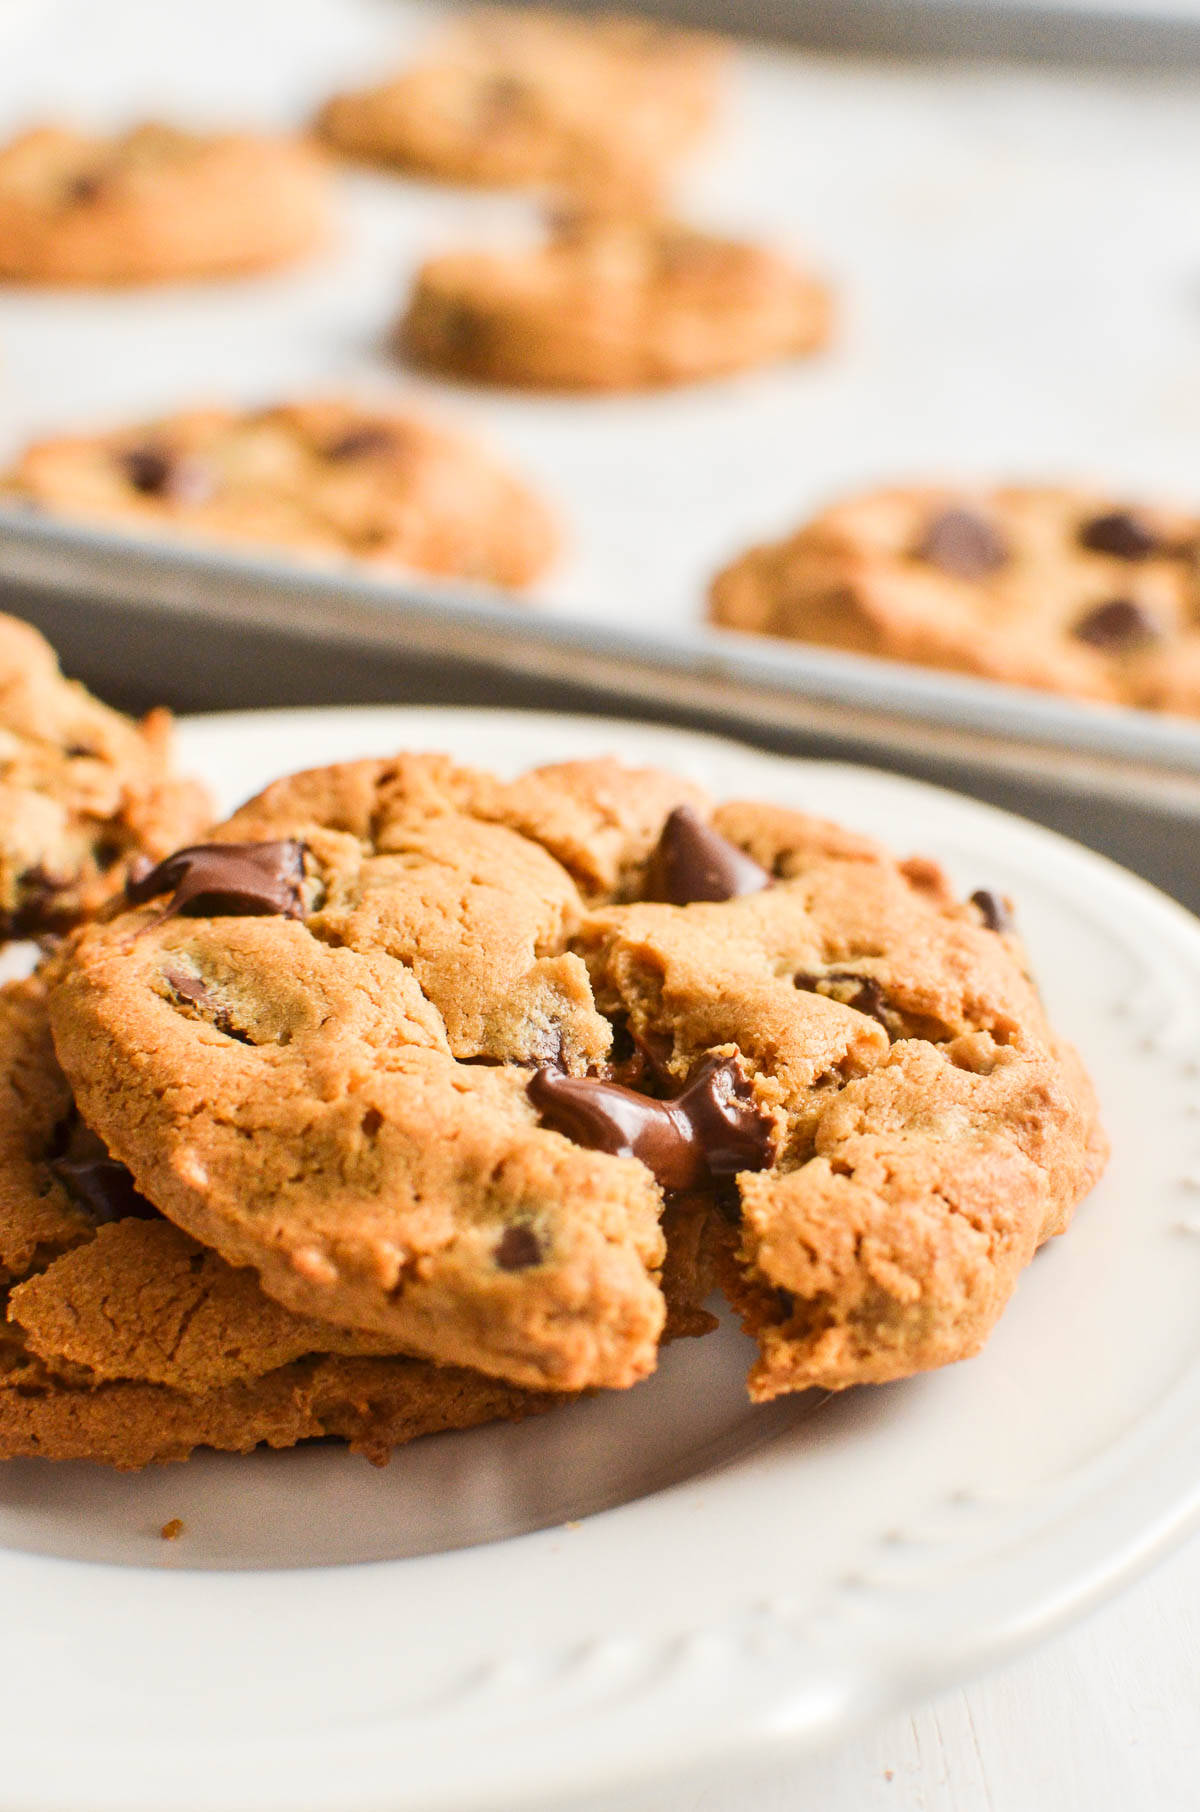 Flourless peanut butter chocolate chip cookies on a white plate.